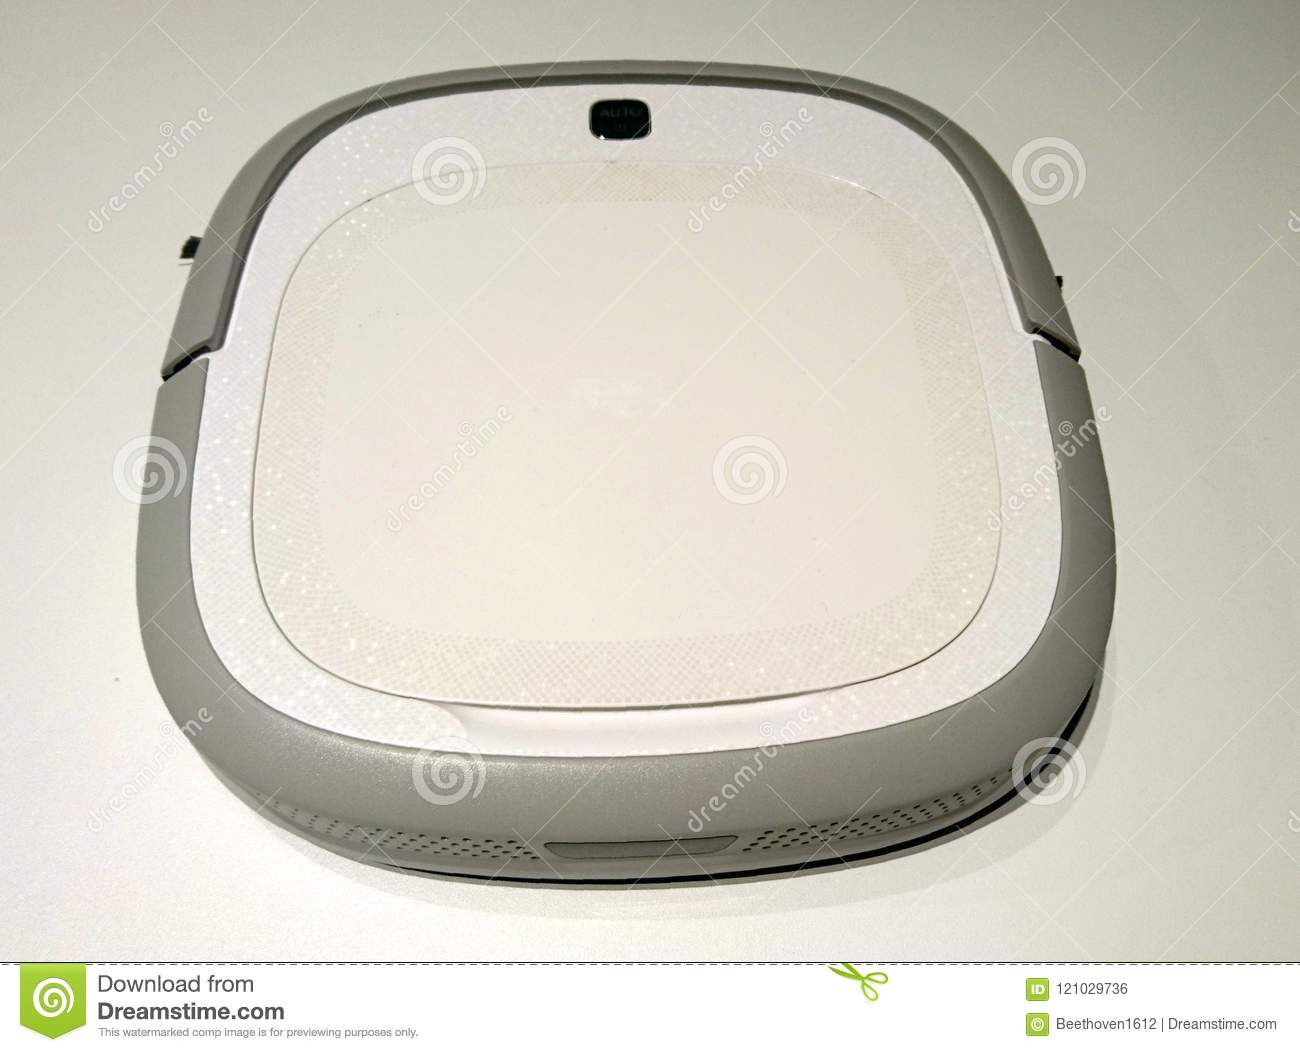 Robot Vacuum Cleaner stock photo  Image of automatic - 121029736